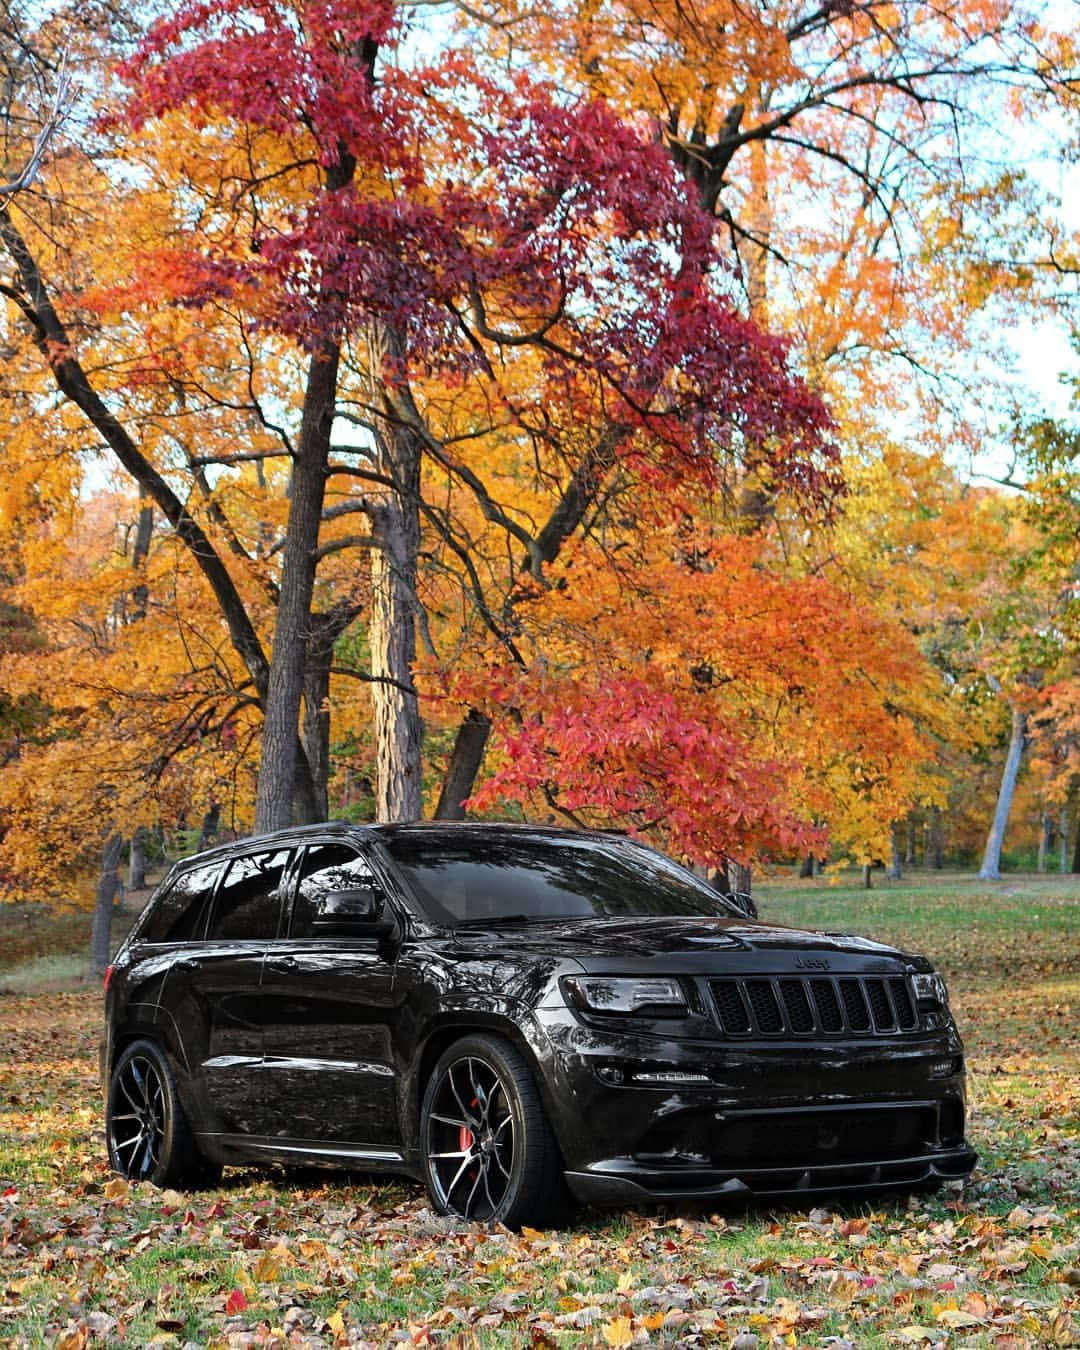 2018 Audi S6 Apr Stage 1 Ryans Dreams Instagram Photos And Videos In 2020 Jeep Grand Cherokee Srt Jeep Srt8 Srt Jeep